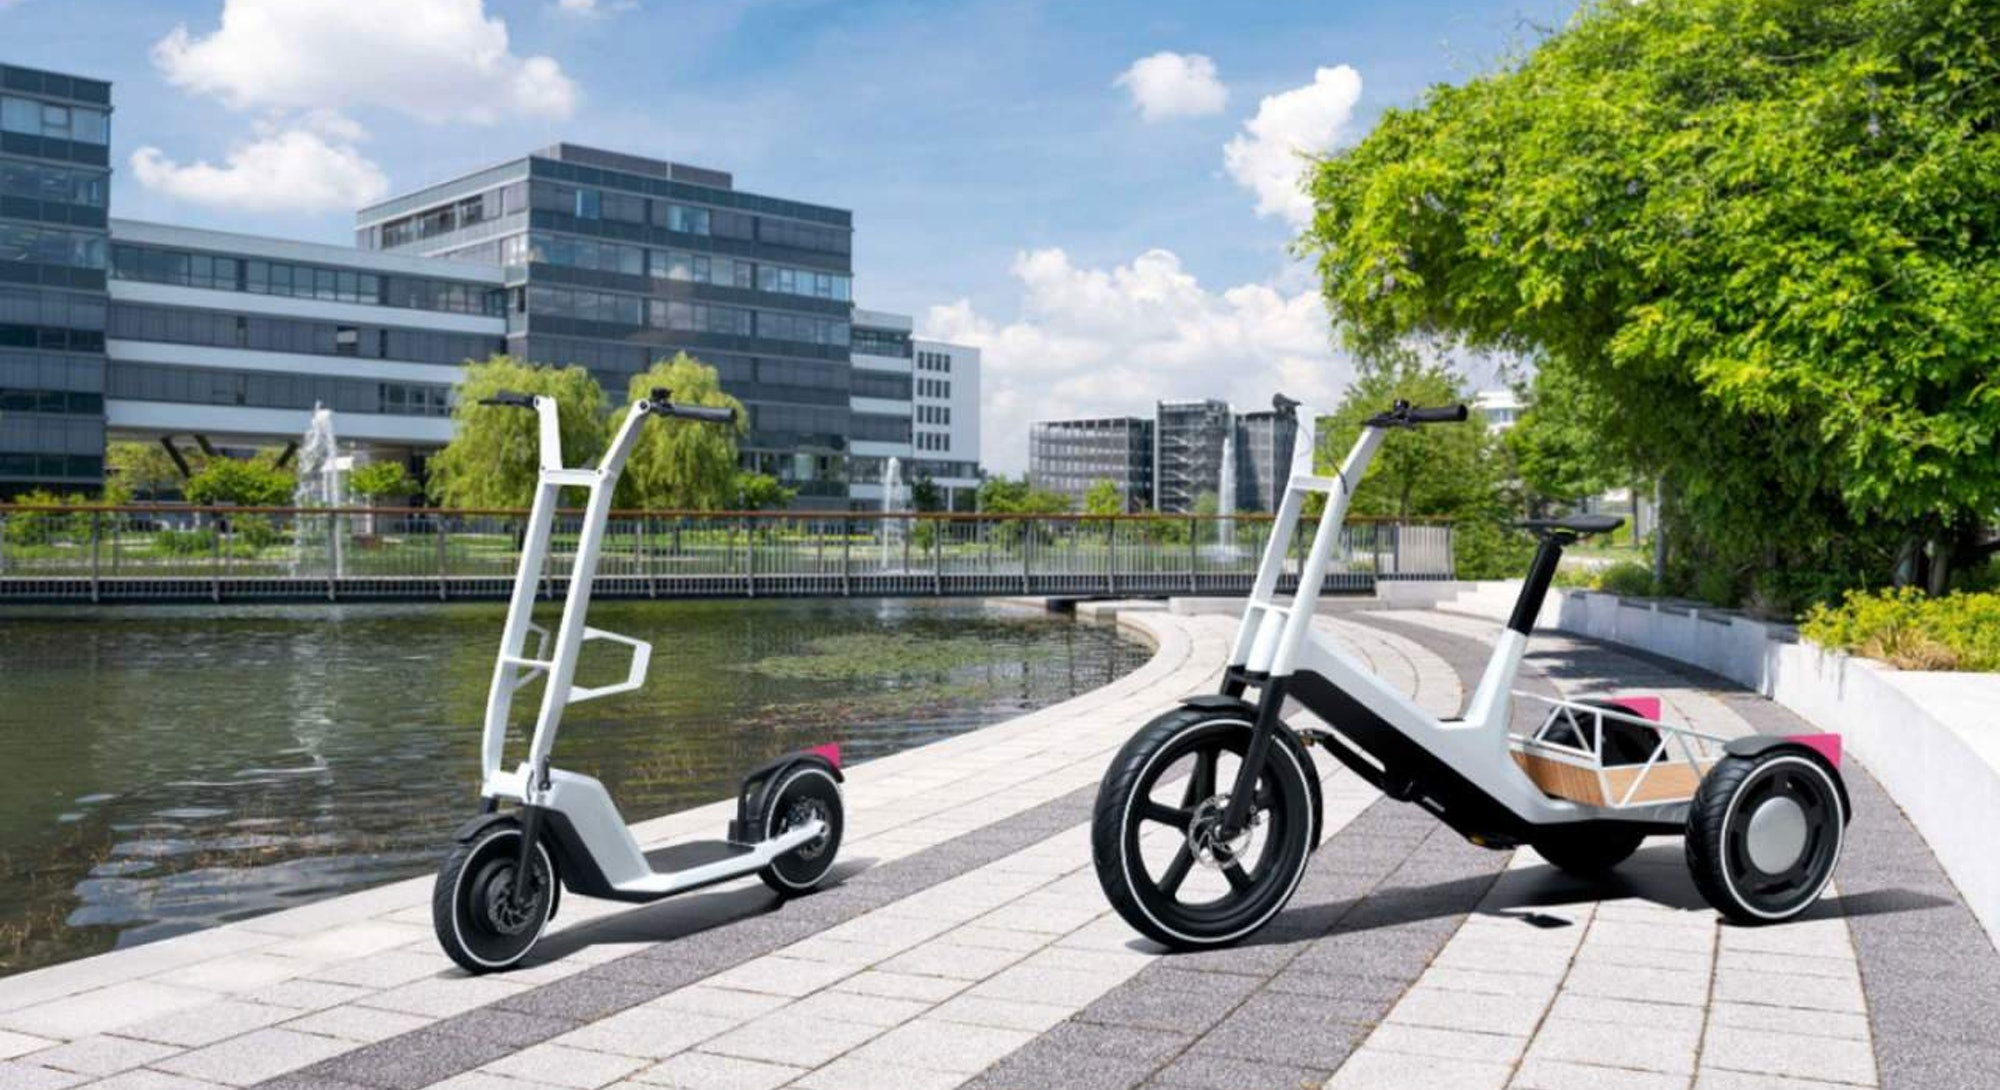 Rendered images of BMW's new e-bike and e-scooter